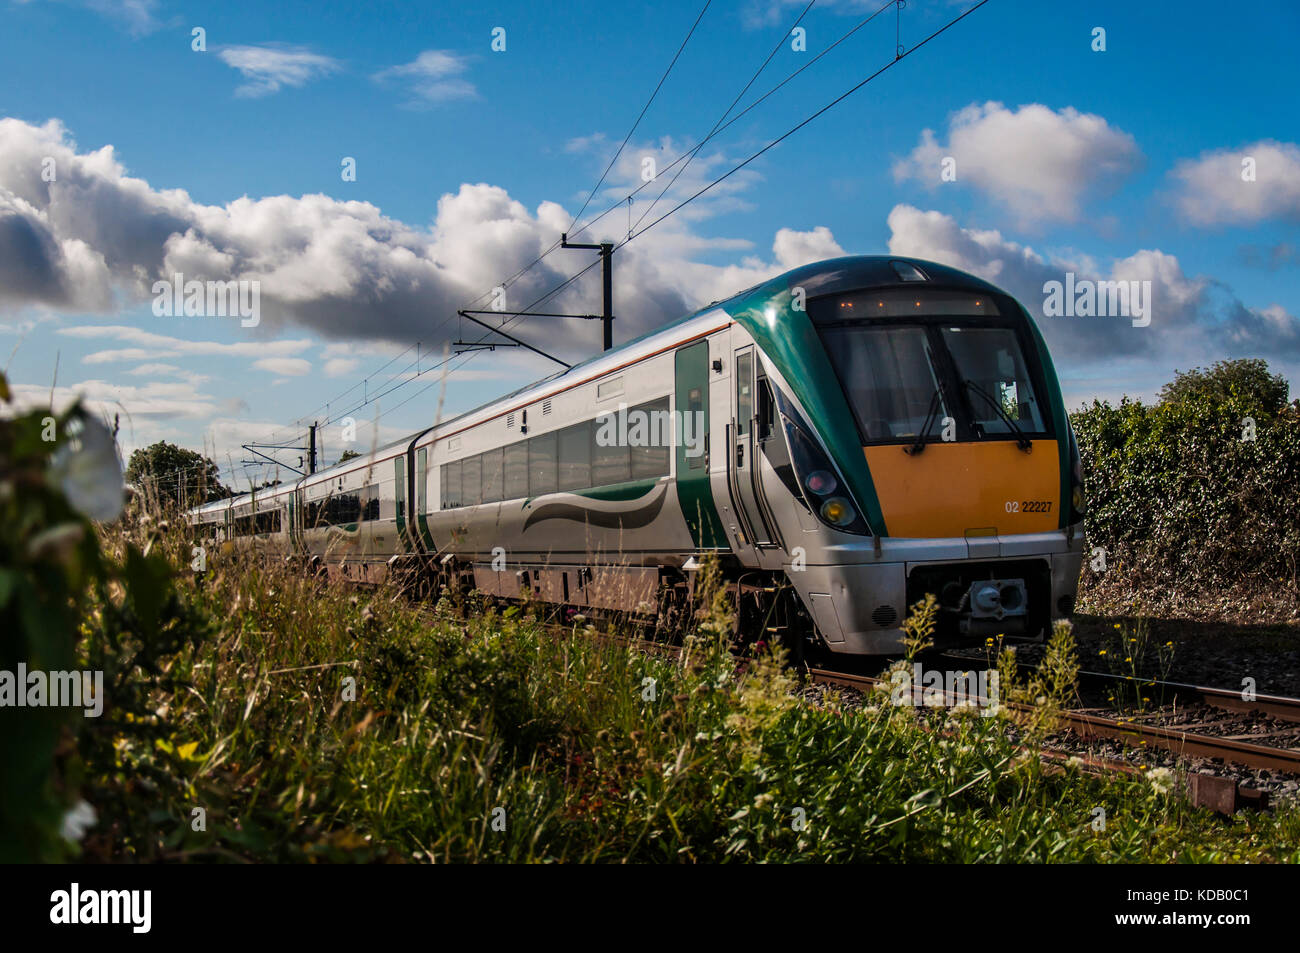 Intercity train on the move. Ireland. - Stock Image